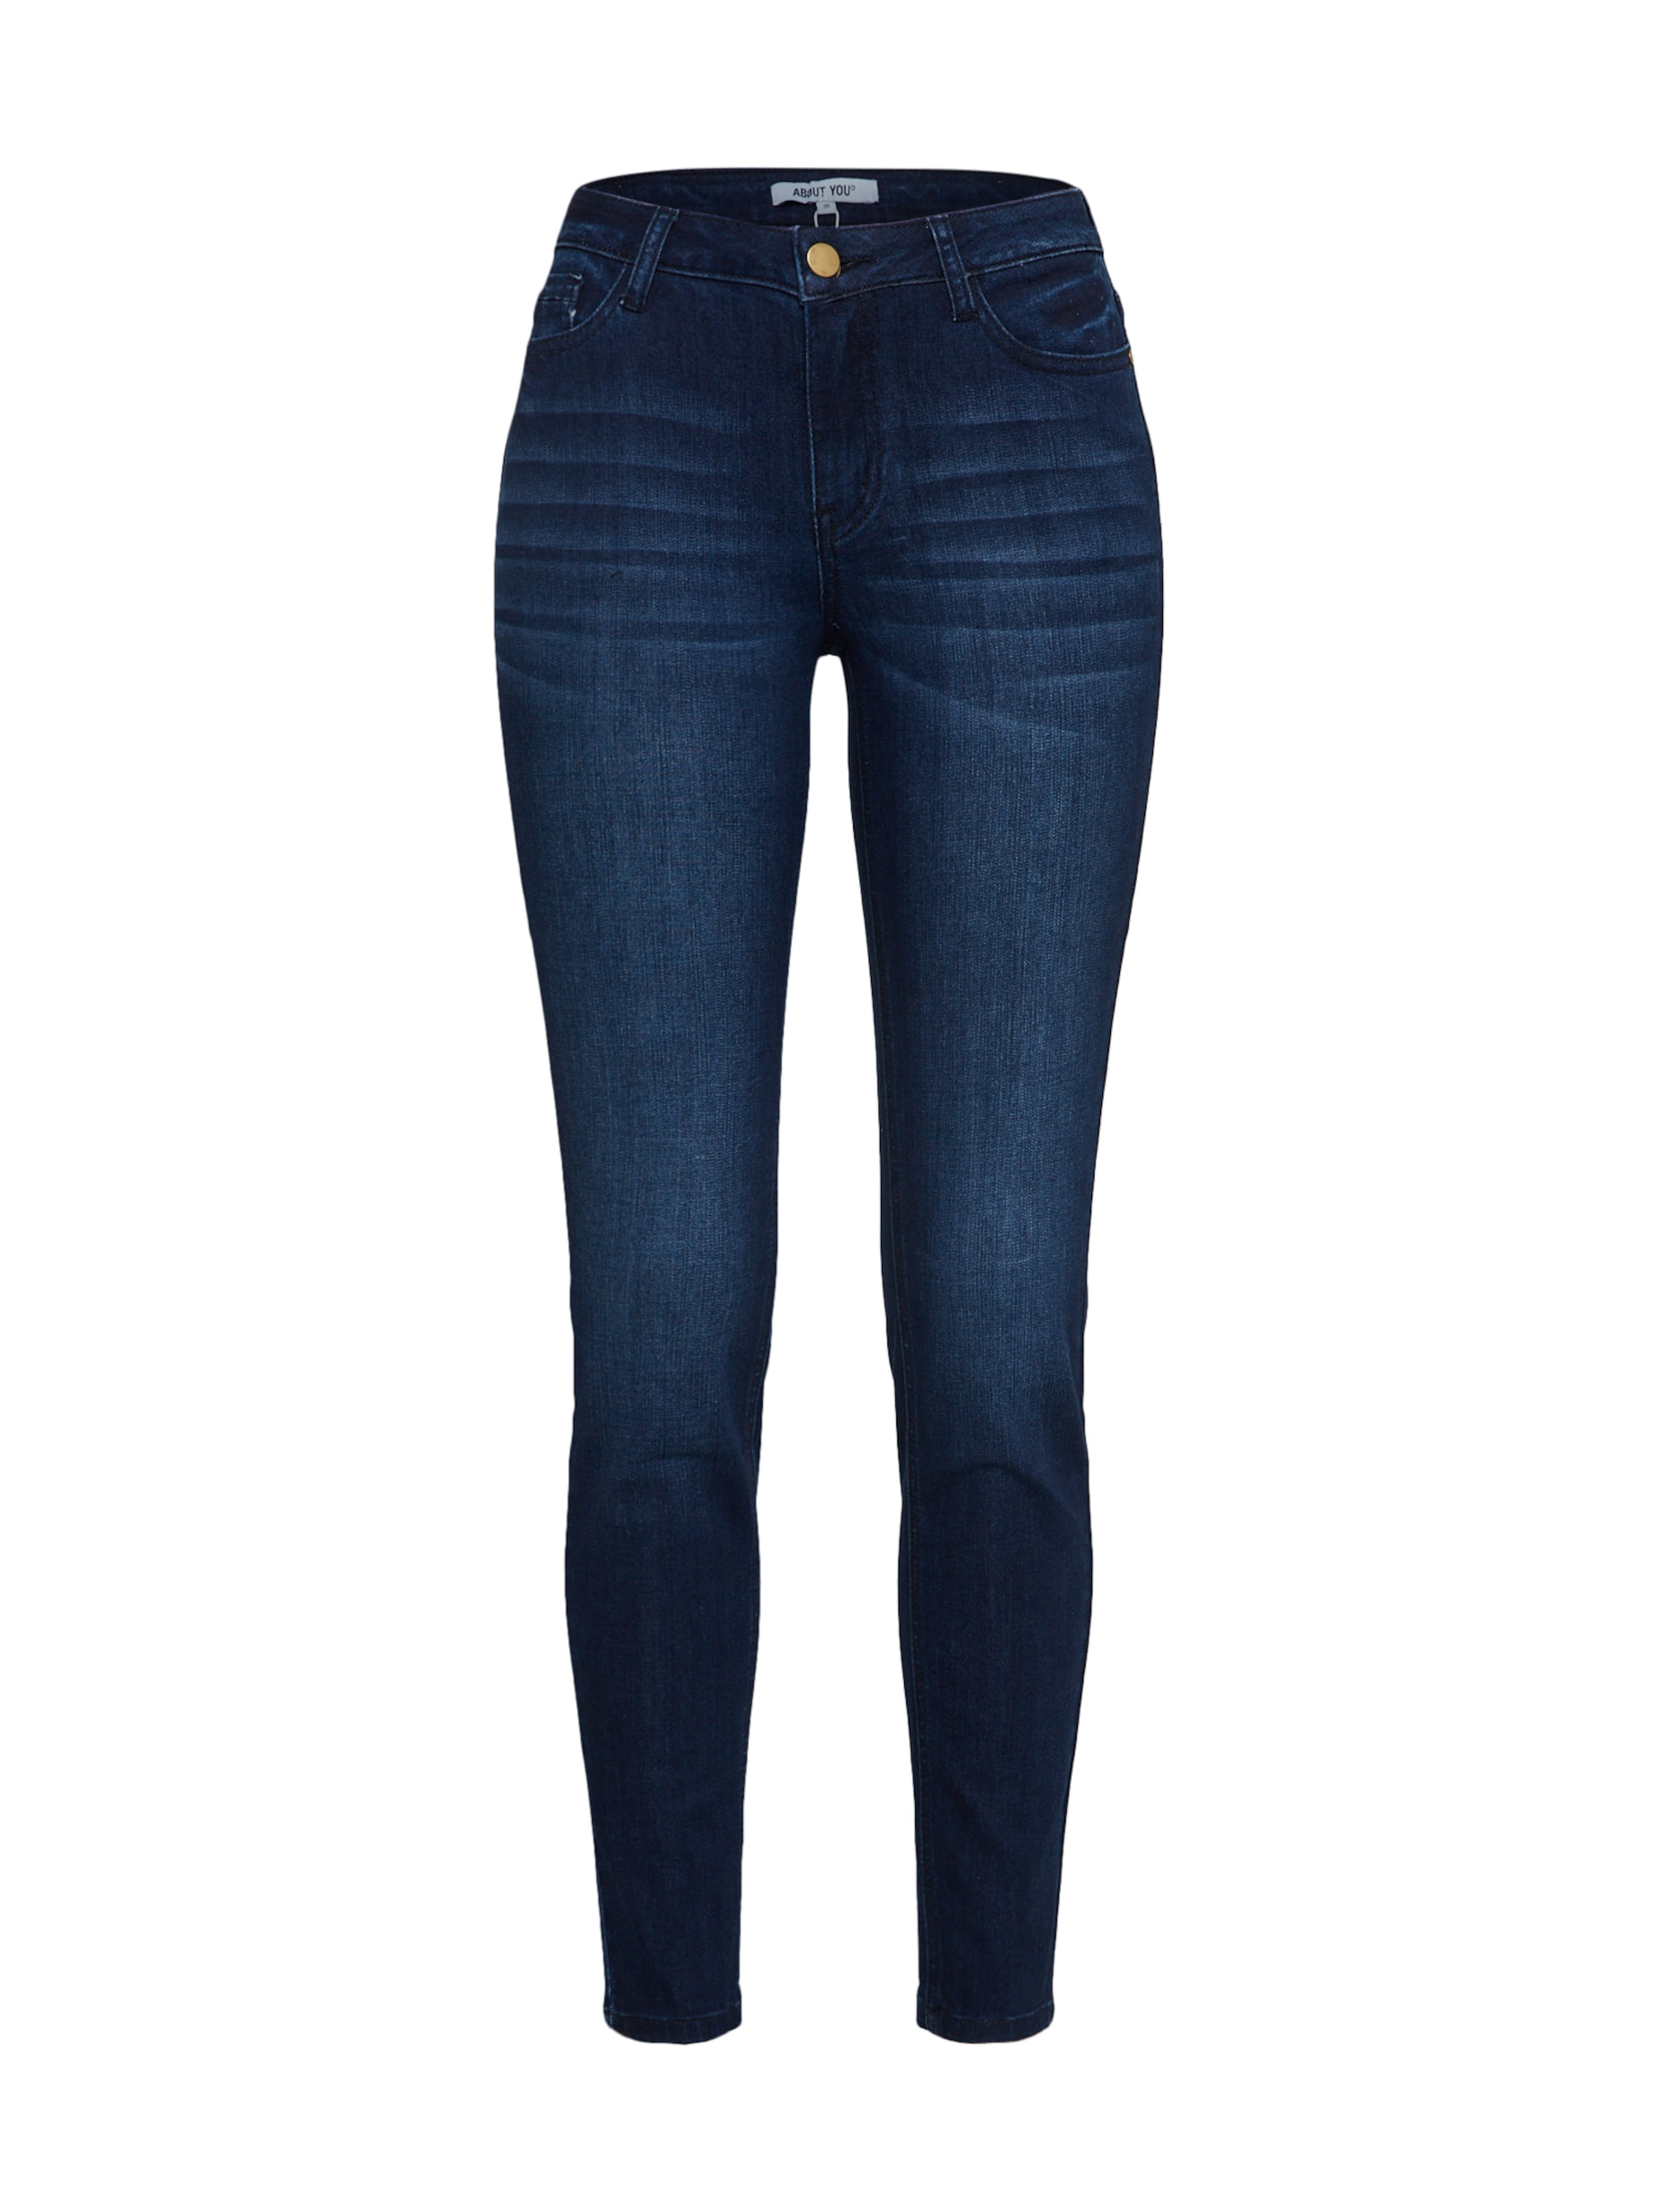 Bleu En Jean Denim You About 'kira' IW9DEH2Y